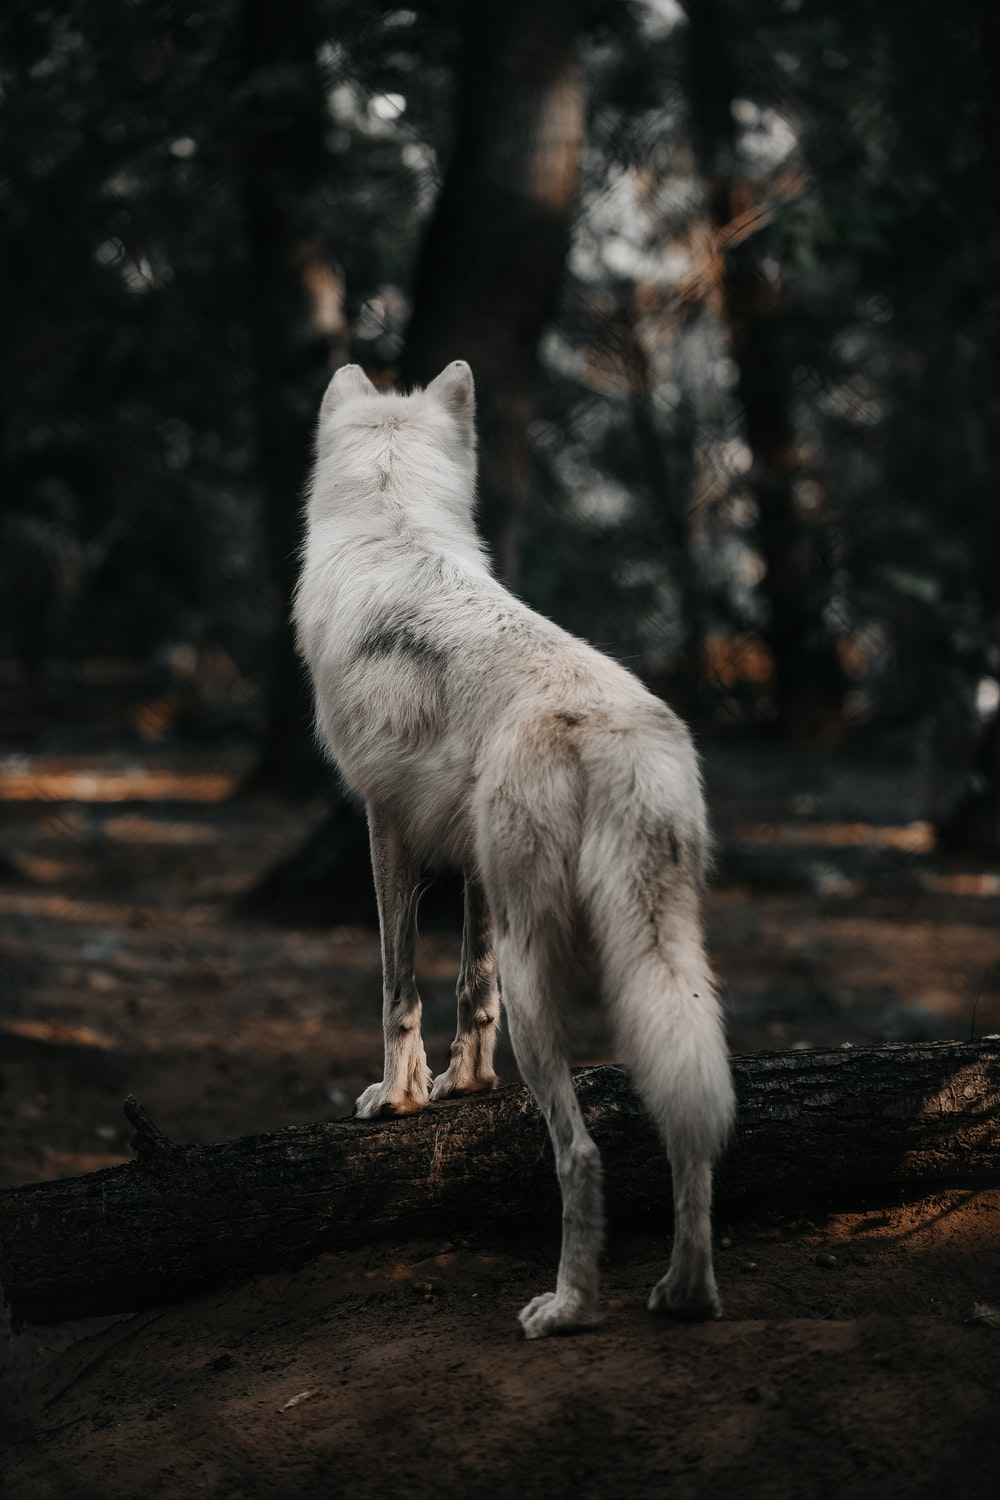 adult white dog in forest